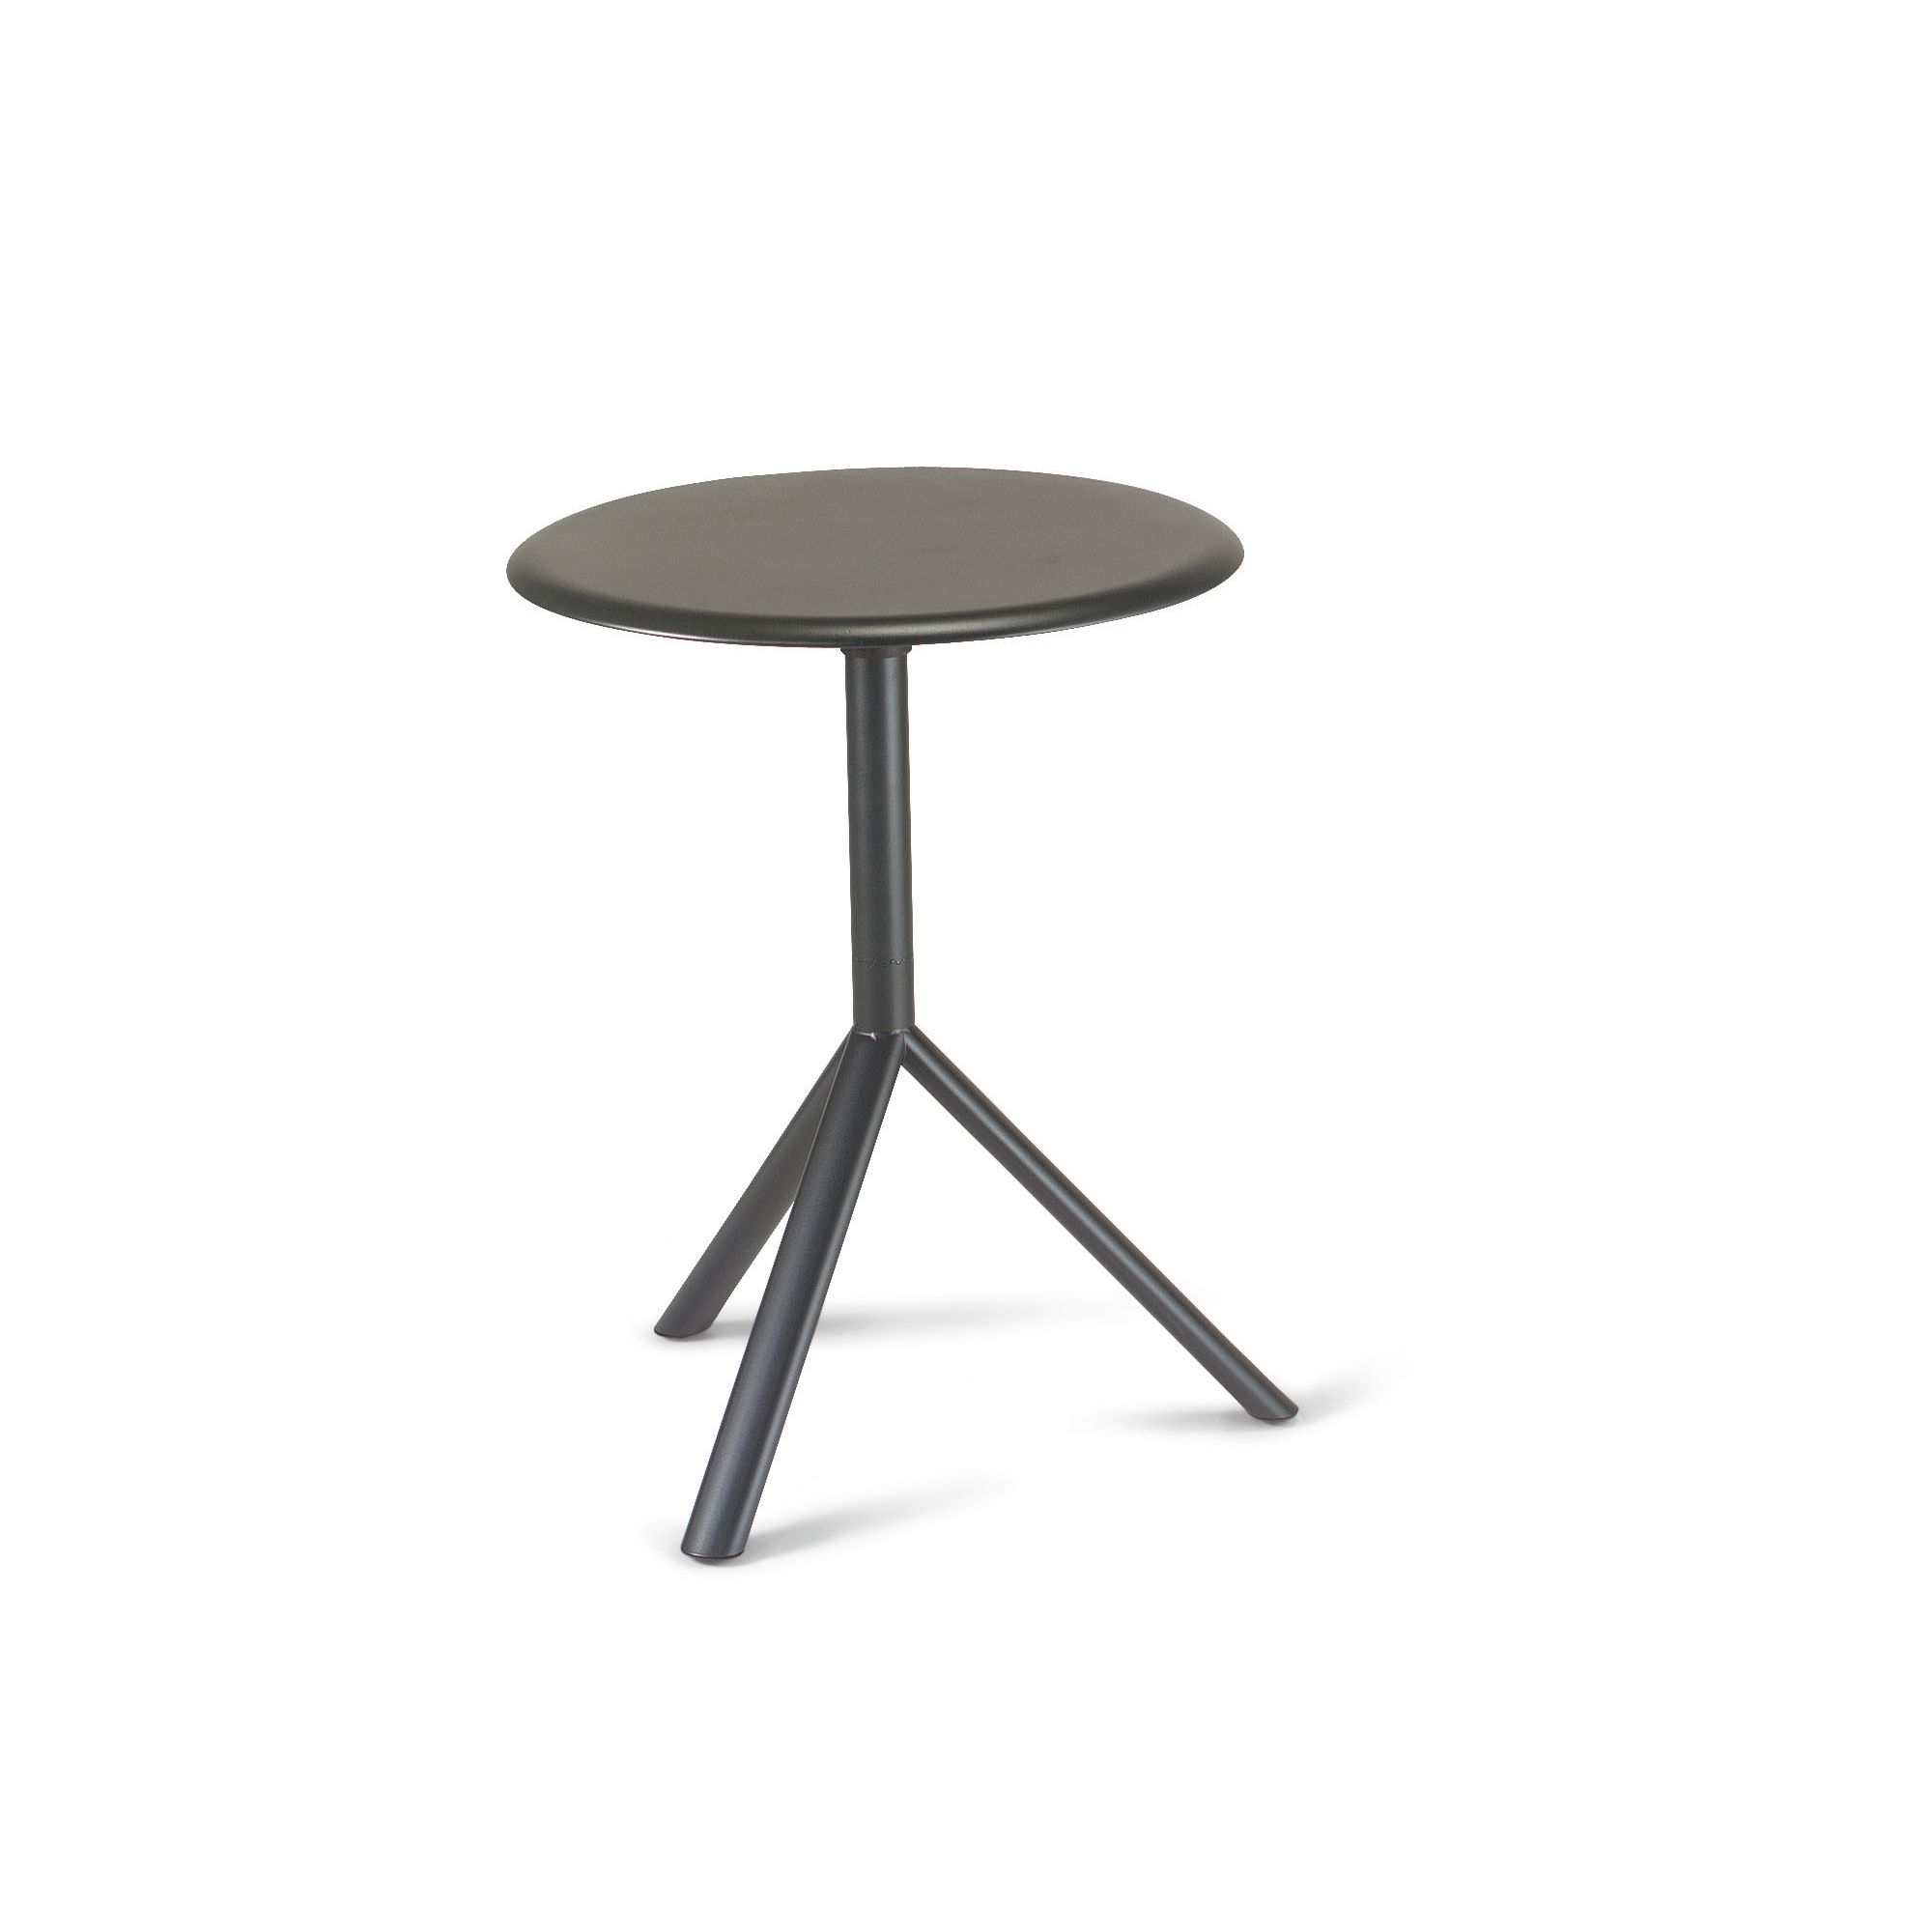 Plank Miura Round Table with High Pressure Laminate Top - 45cm - White at Tesco Direct